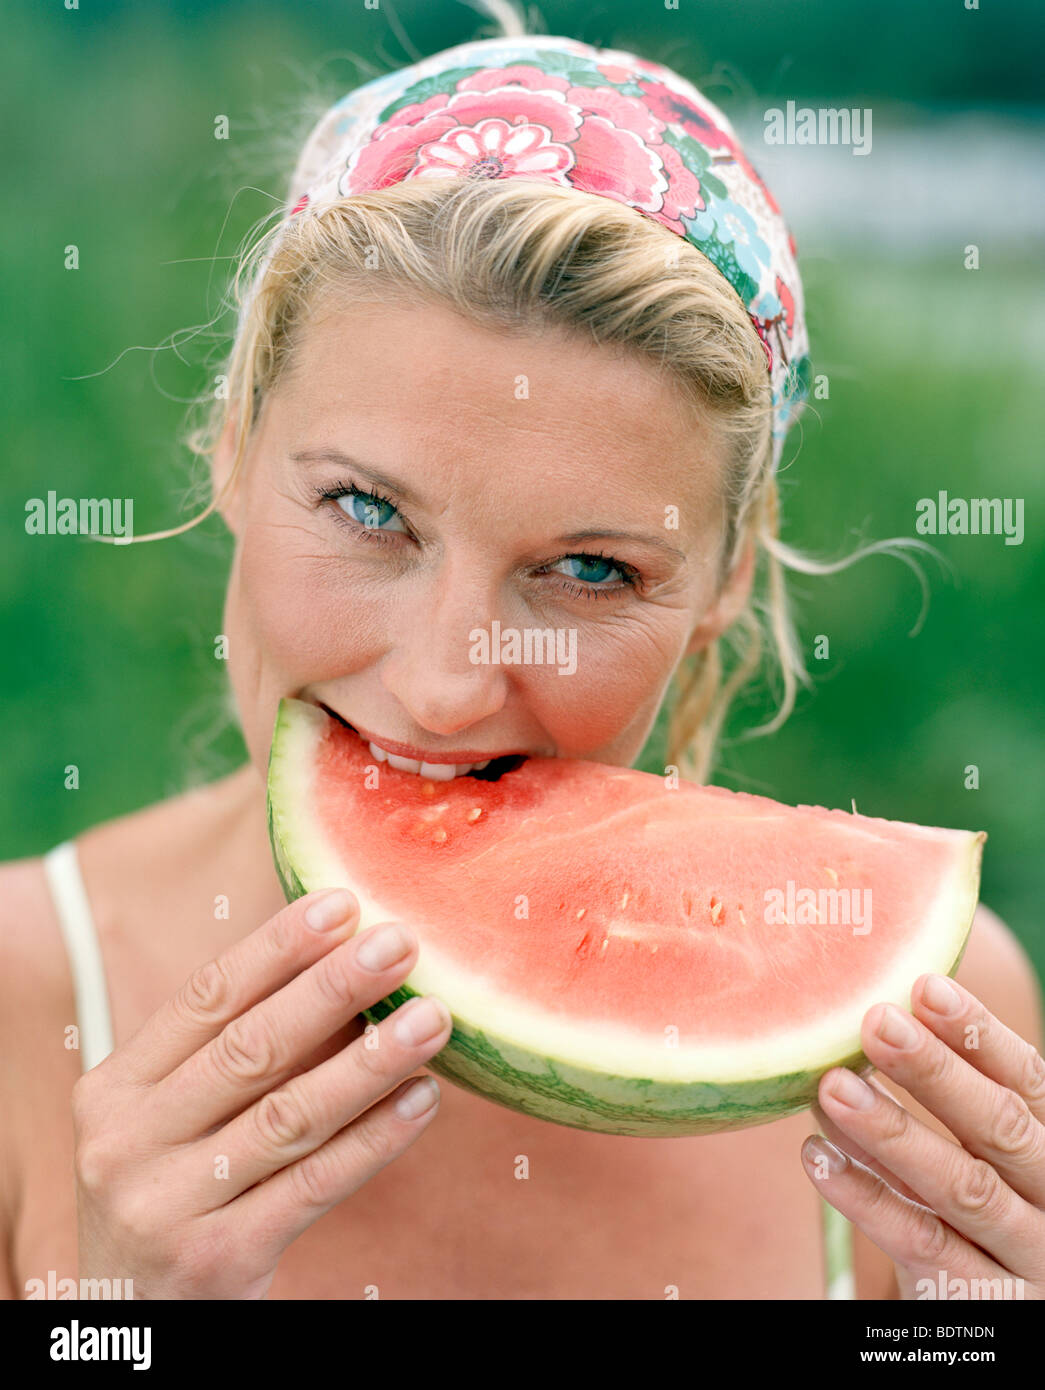 A woman eating a watermelon - Stock Image